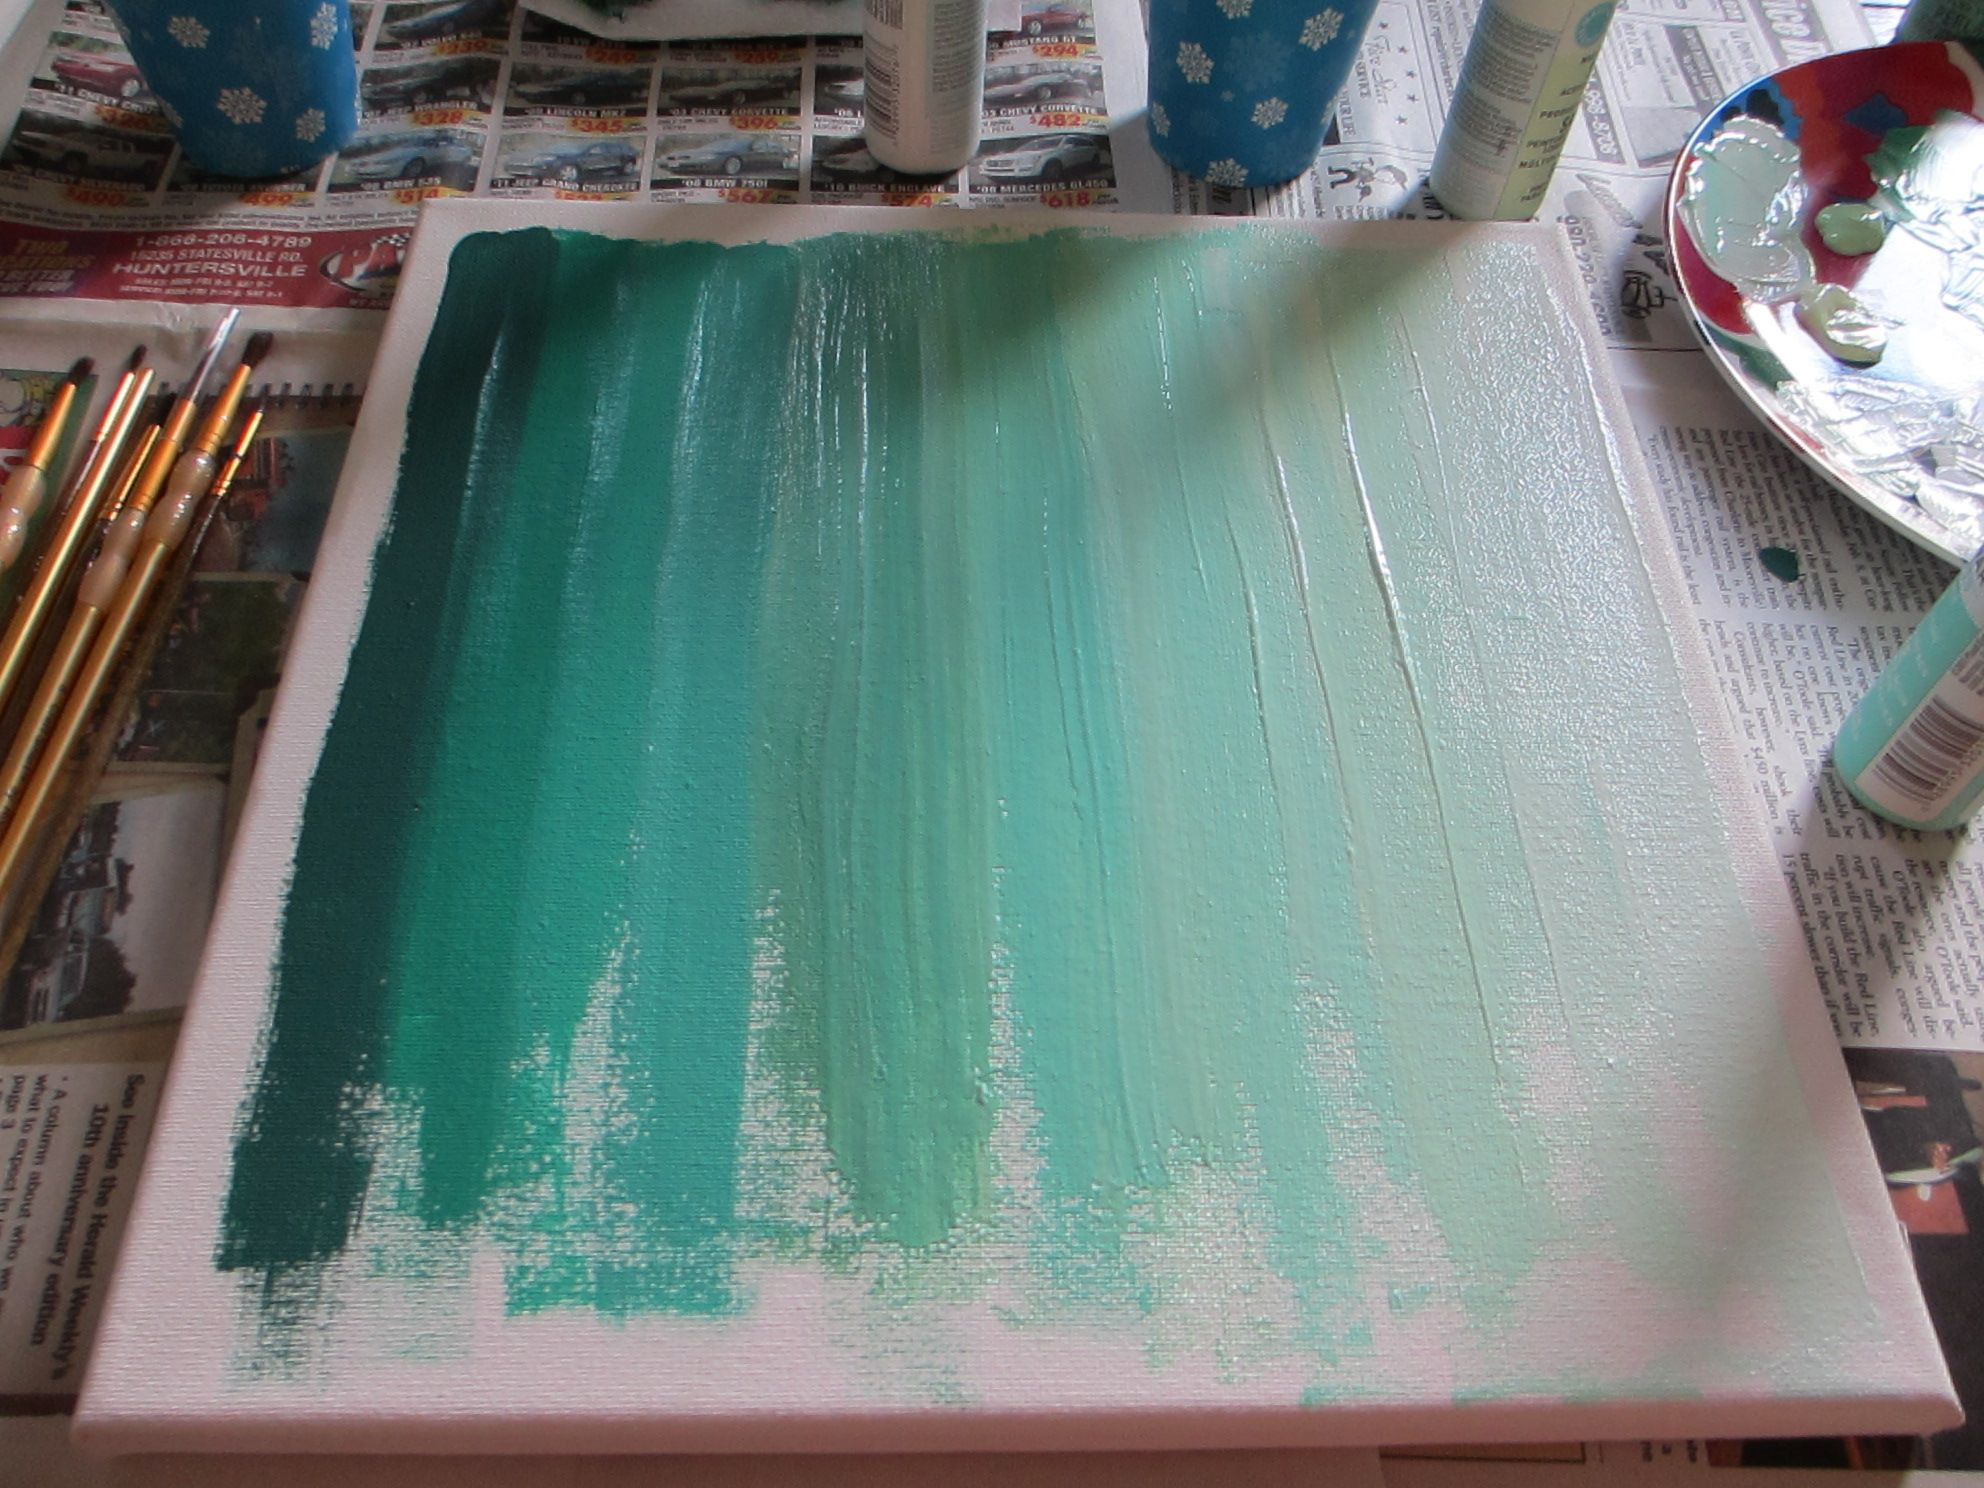 Best ideas about DIY Painting Ideas . Save or Pin Best 25 Diy canvas ideas on Pinterest Now.